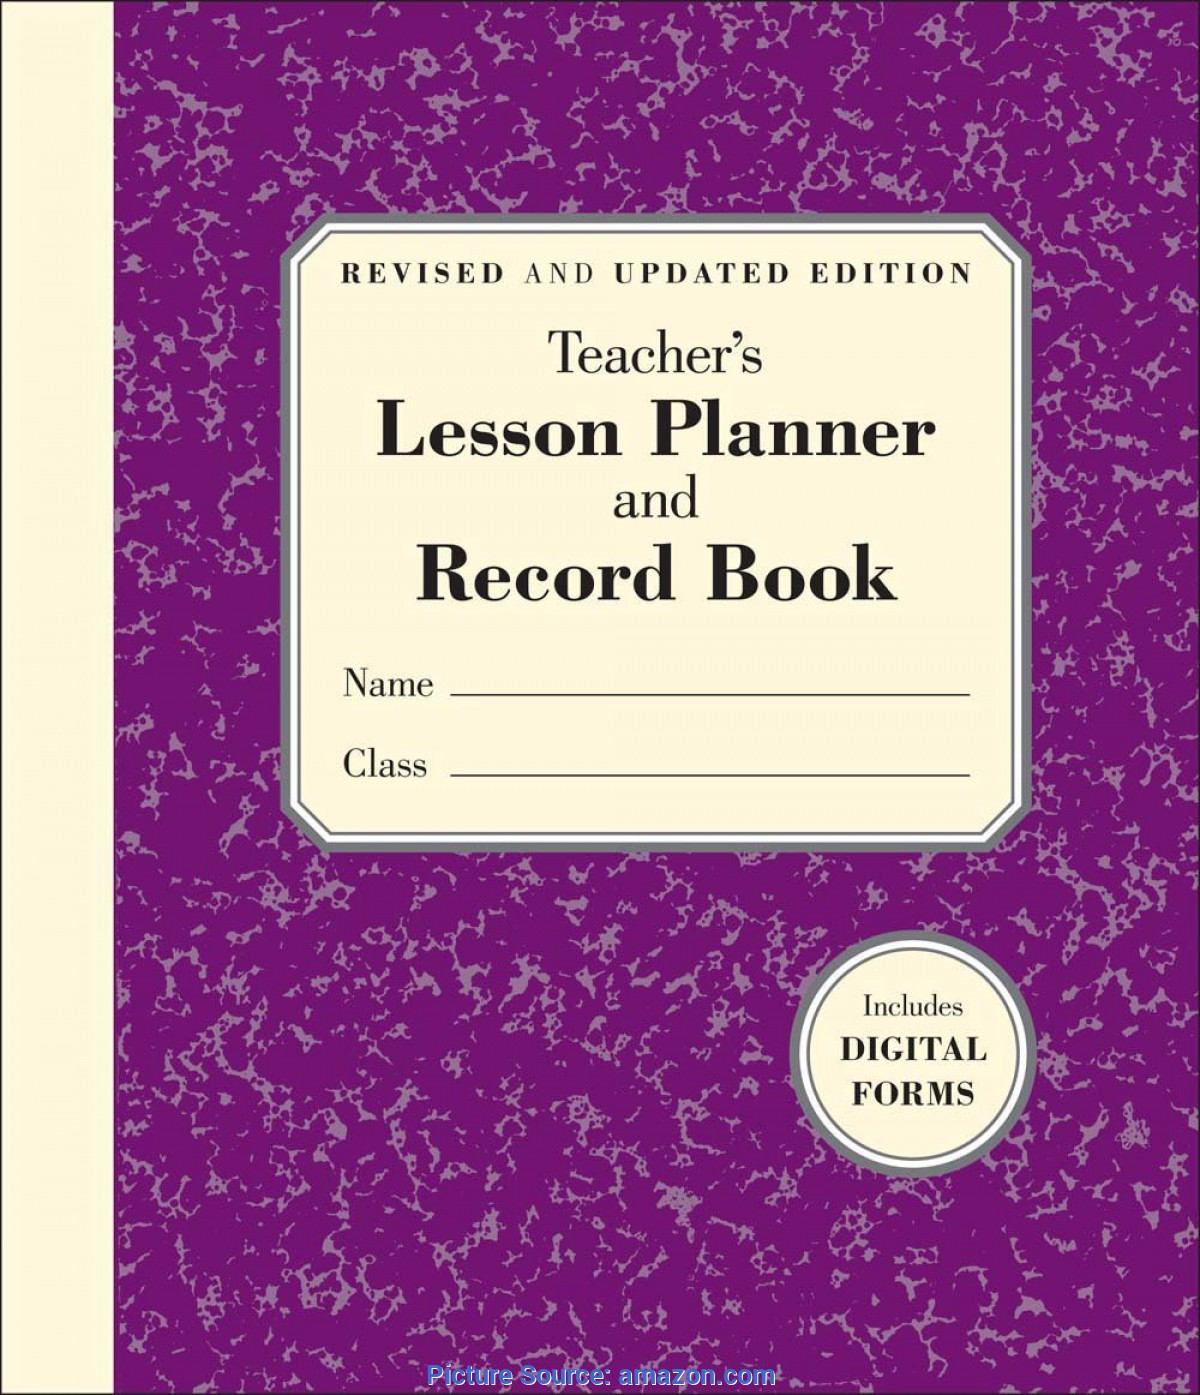 Best Teacher Lesson Planner And Record Book By Stephanie Embrey The Teacher'S Lesson Planner And Record Book: Stephanie Embre